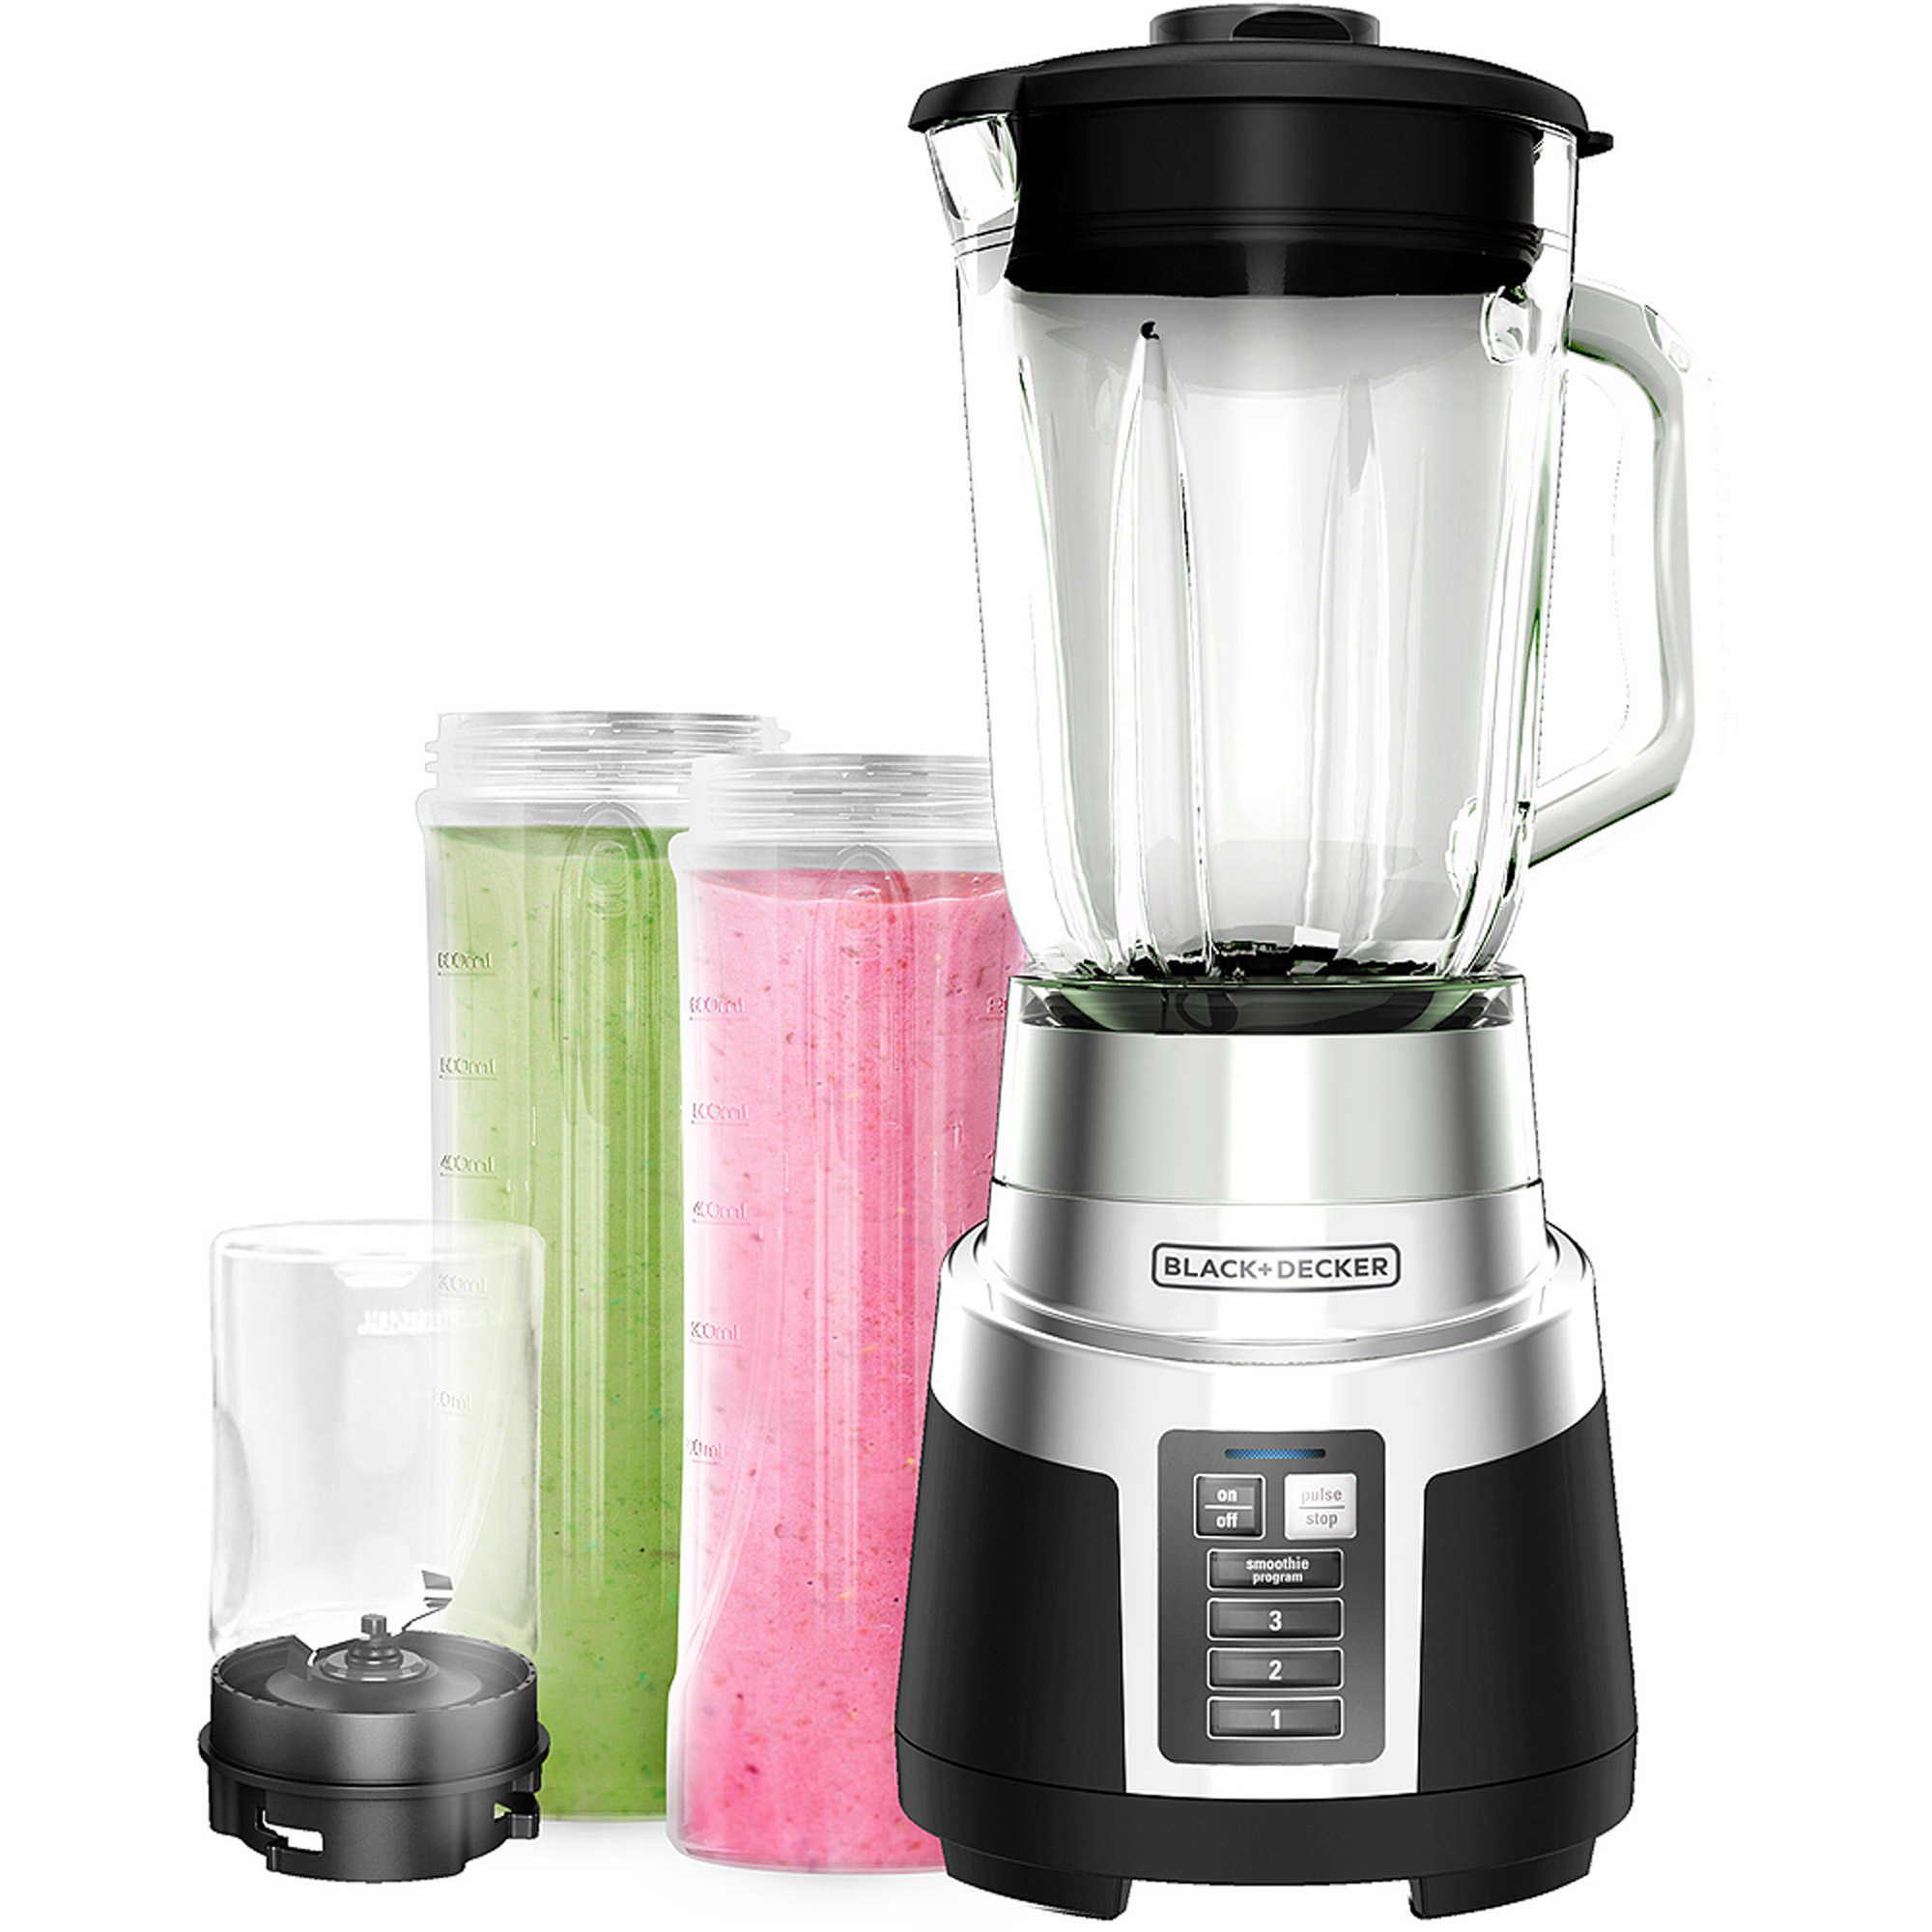 Black & Decker FusionBlade Blender with 2 Personal-Size Jars and Grinding Jar